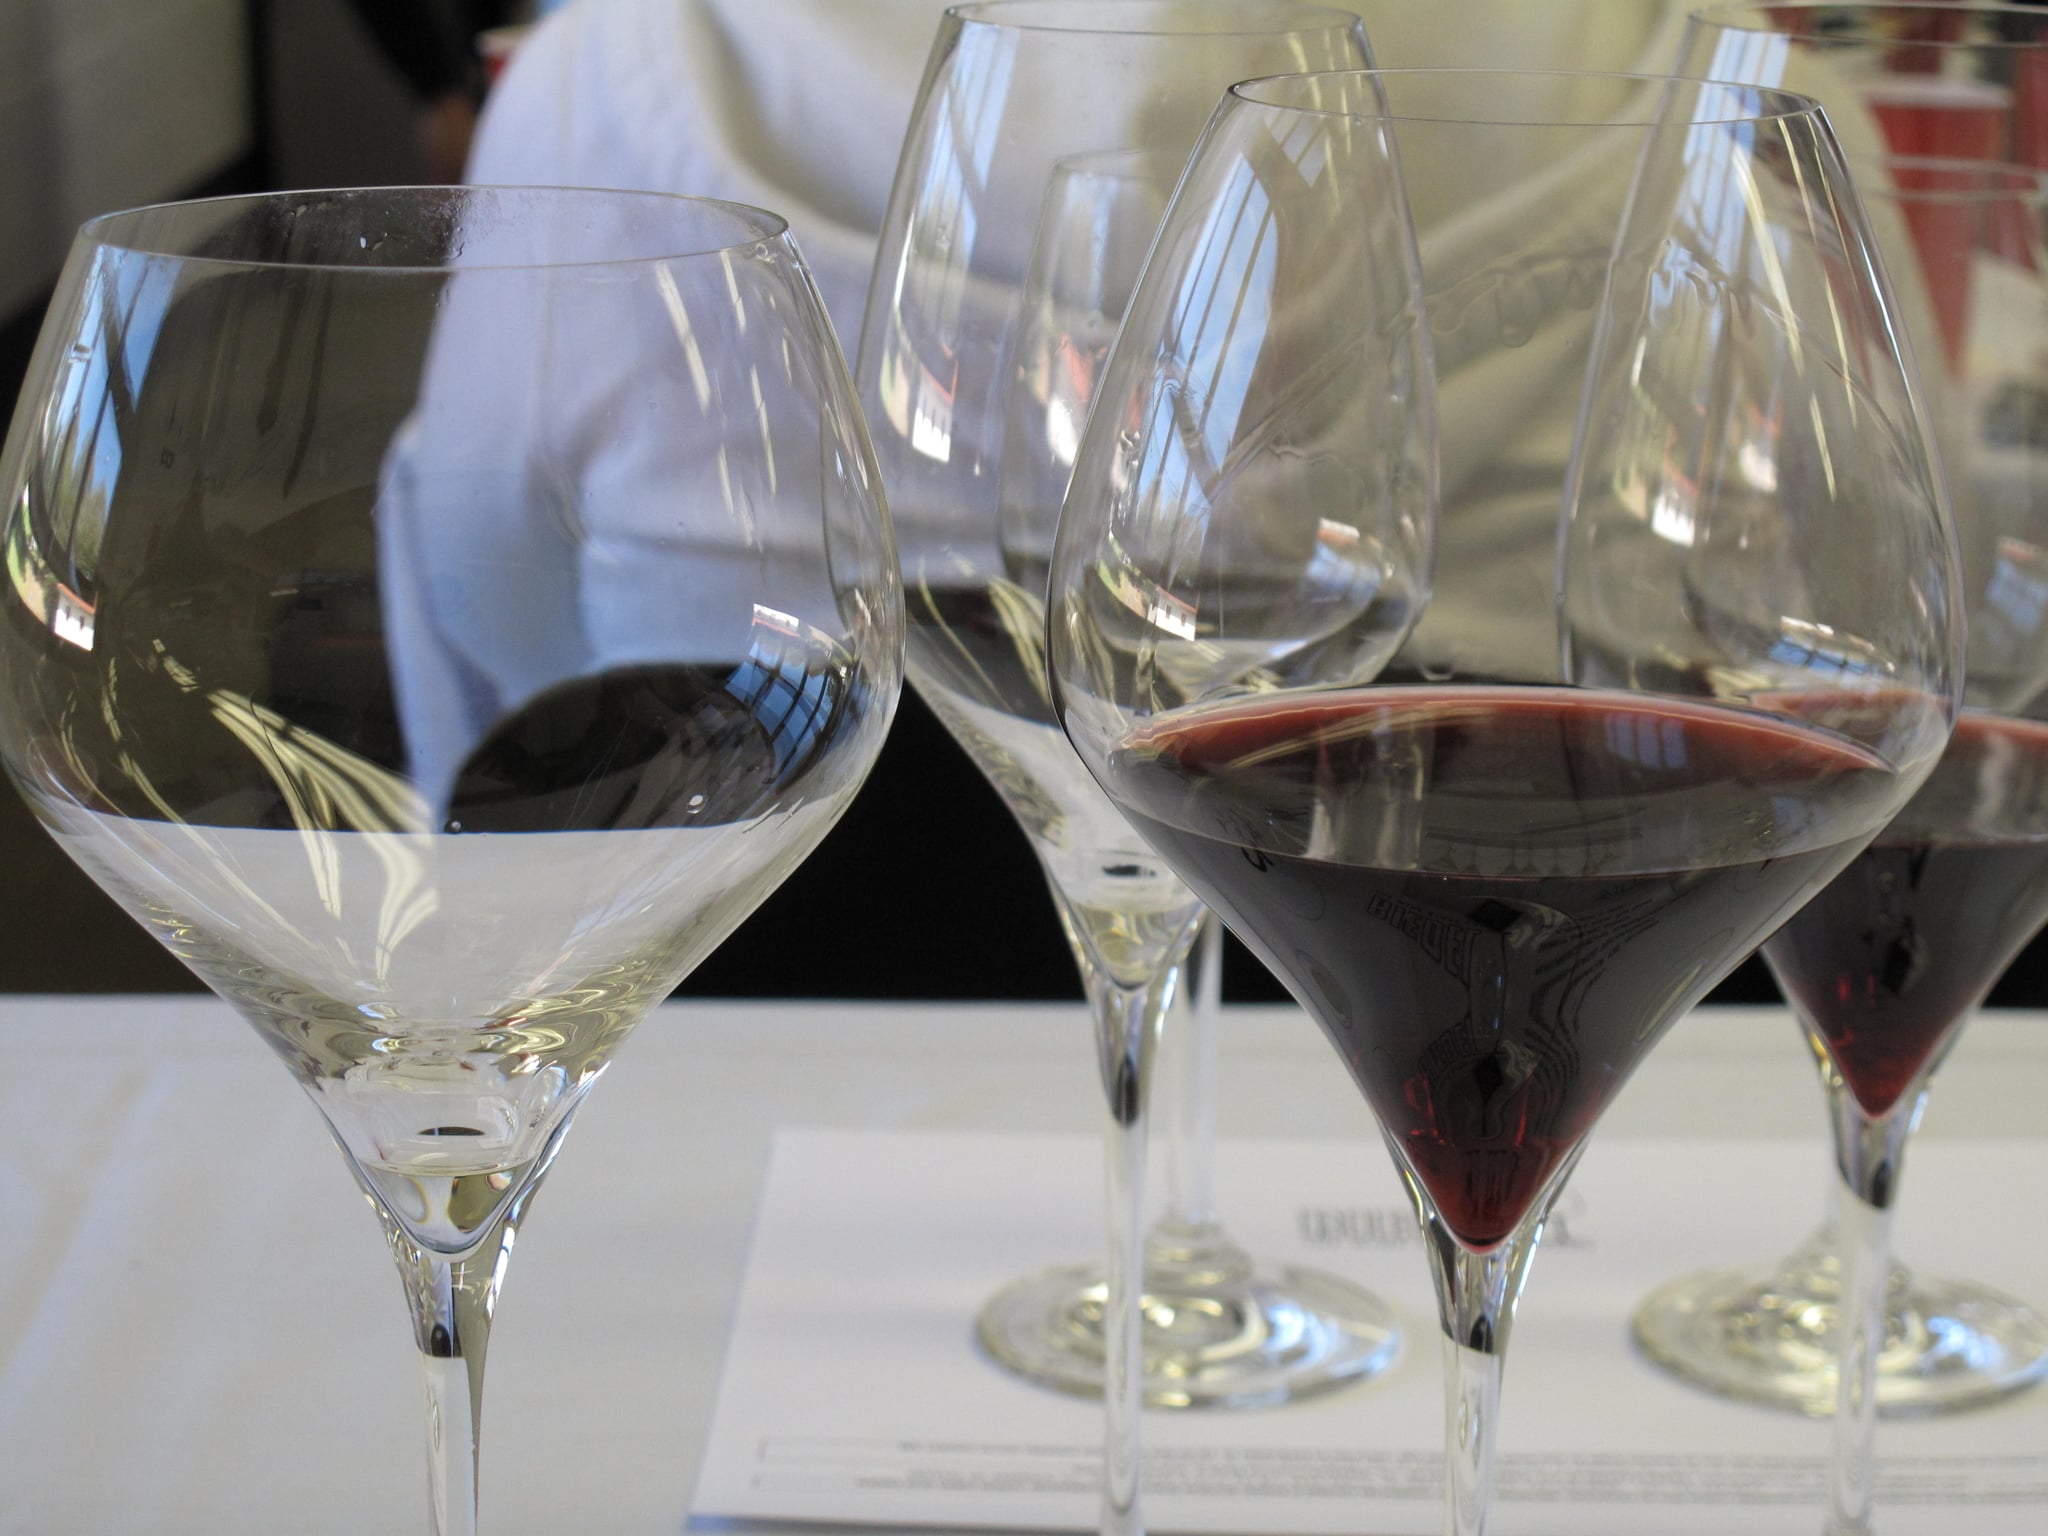 Note the difference in shape of the Montrachet/Chardonnay glass (left) versus the Pinot Noir glass (right).